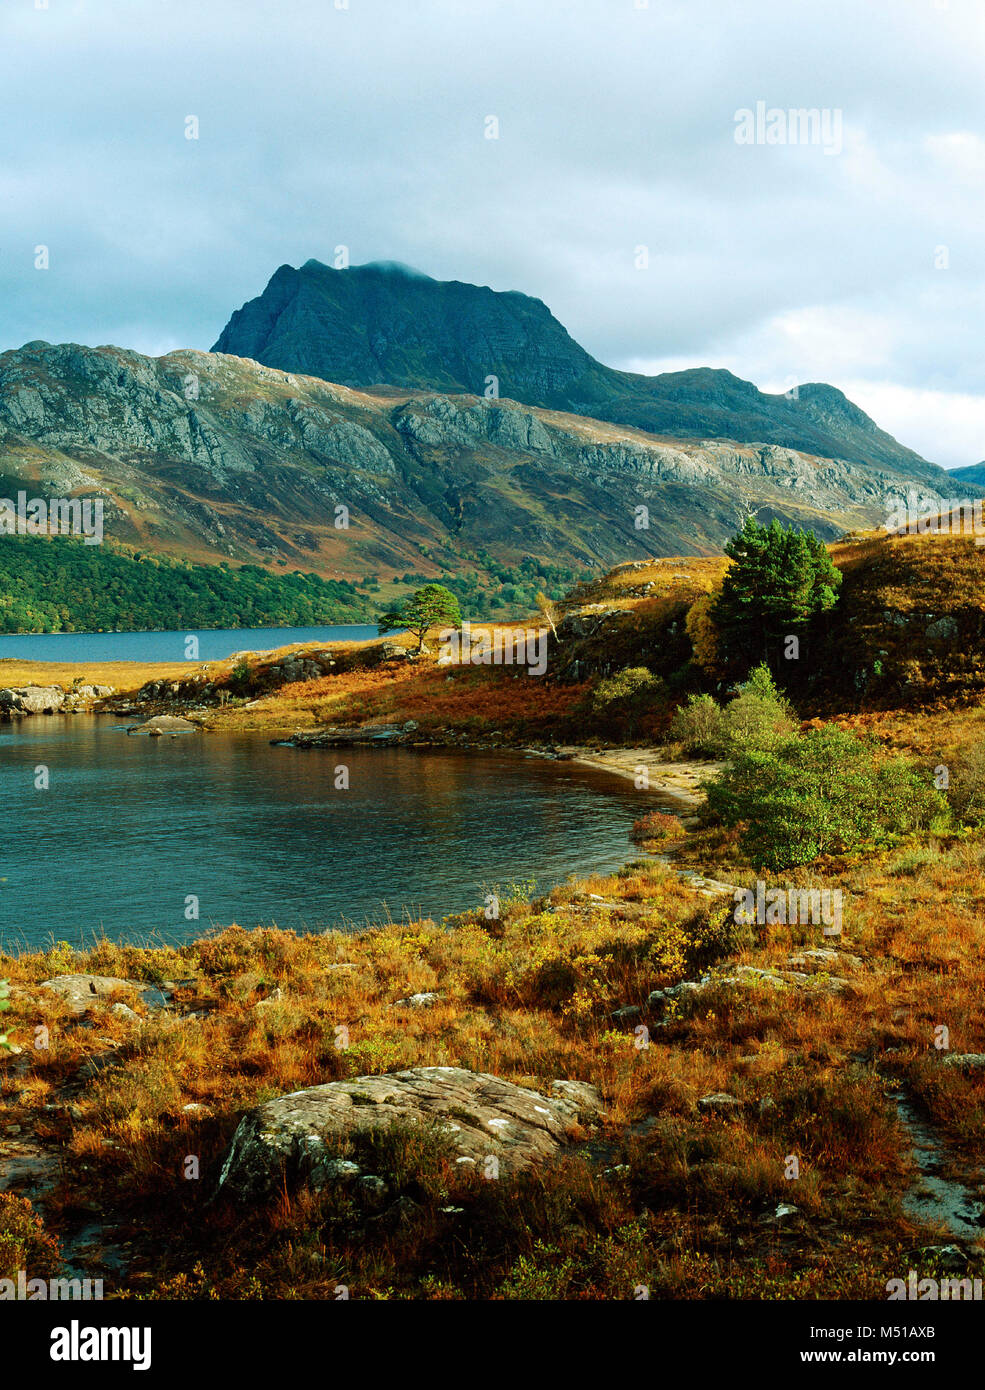 Across a corner of Loch Maree to Slioch, Wester Ross, Highland, Scotland - Stock Image